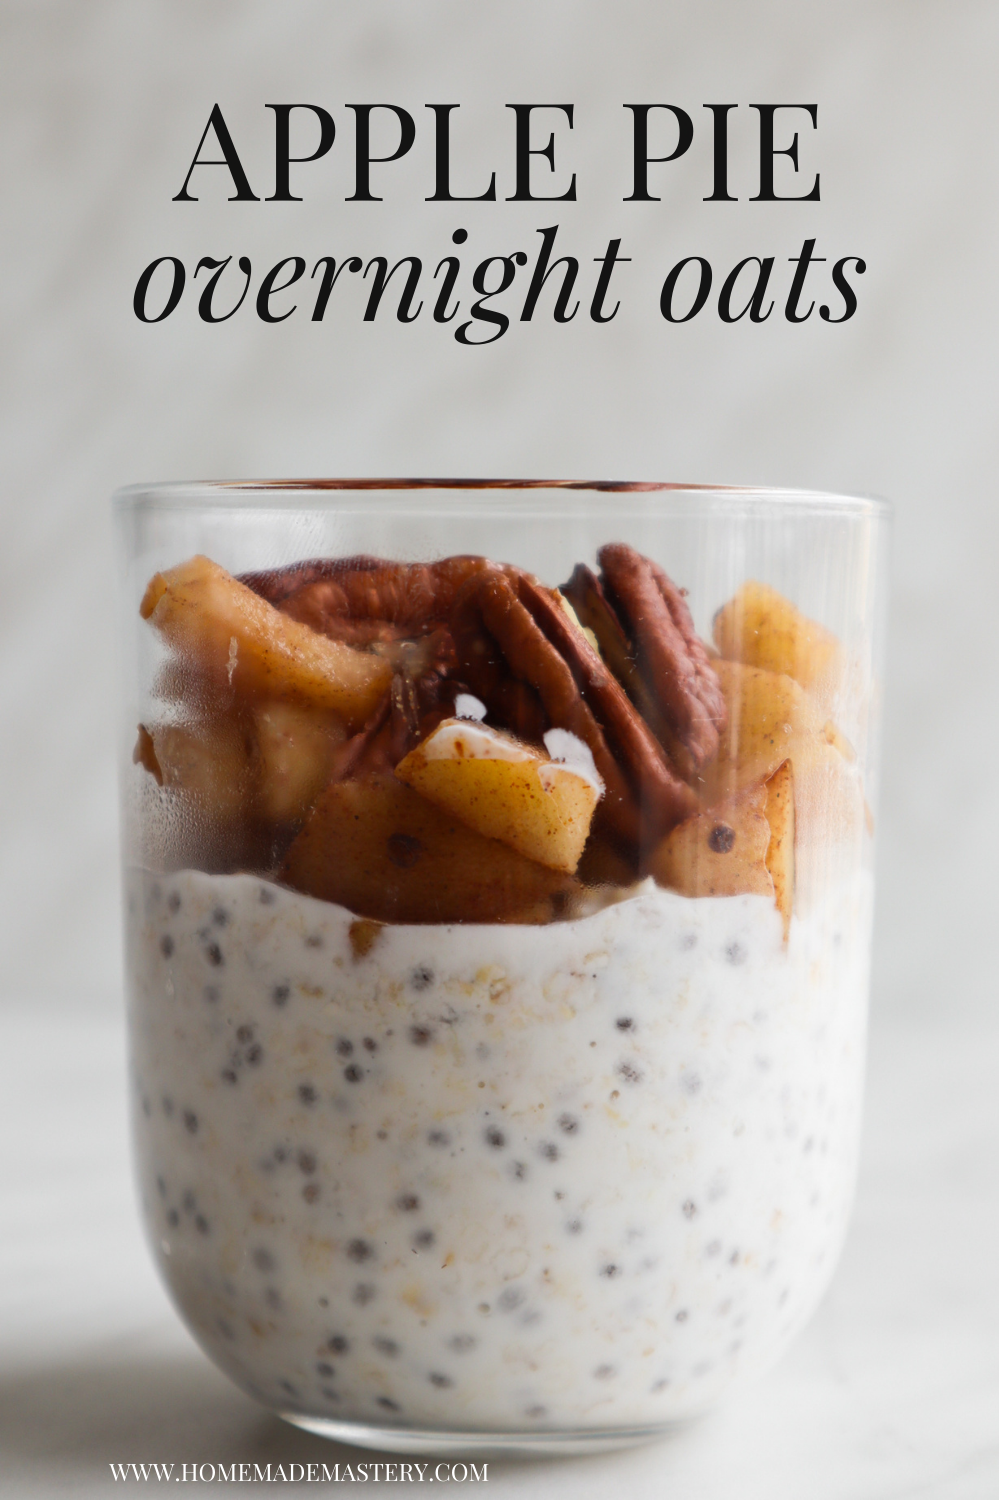 Learn how to make overnight oats with this healthy overnight oats recipe for a quick and easy breakfast! Apple pie overnight oats recipe